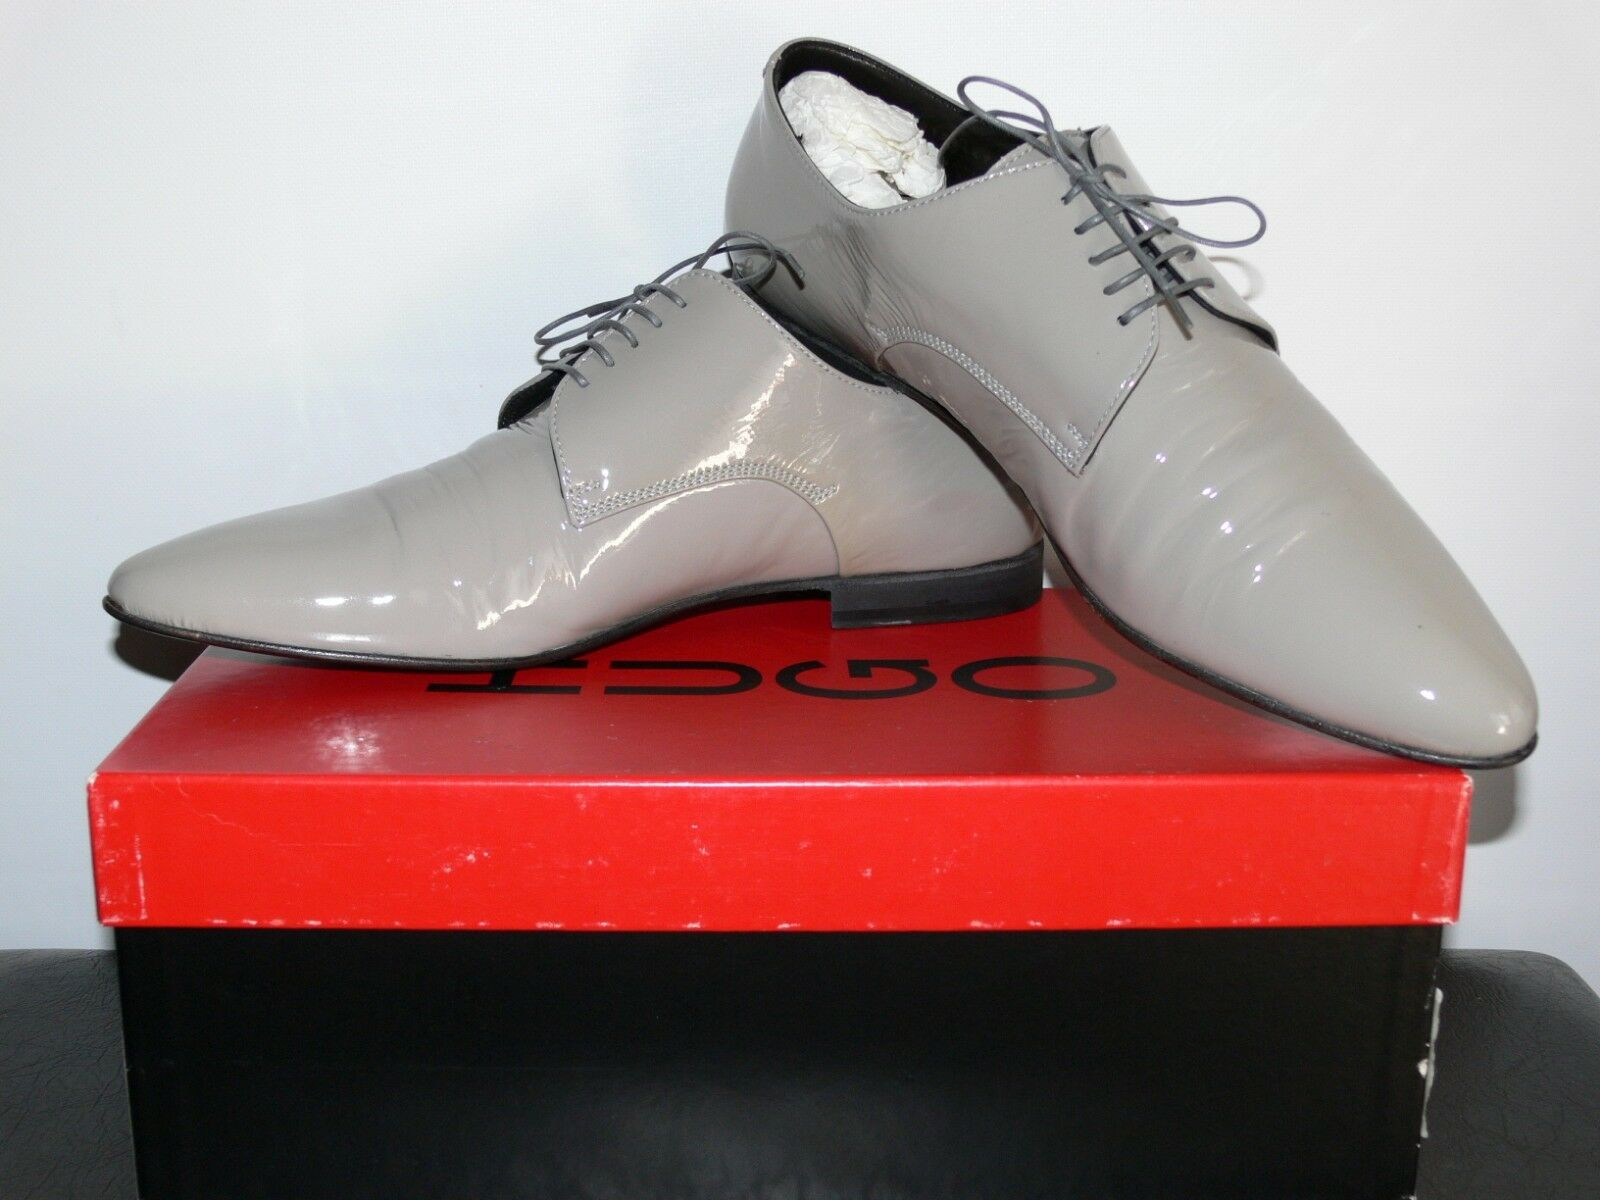 NEW  295.00 HUGO BOSS RED LABEL MADE IN ITALY GENUINE PATENT LEATHER  SIZE US 10